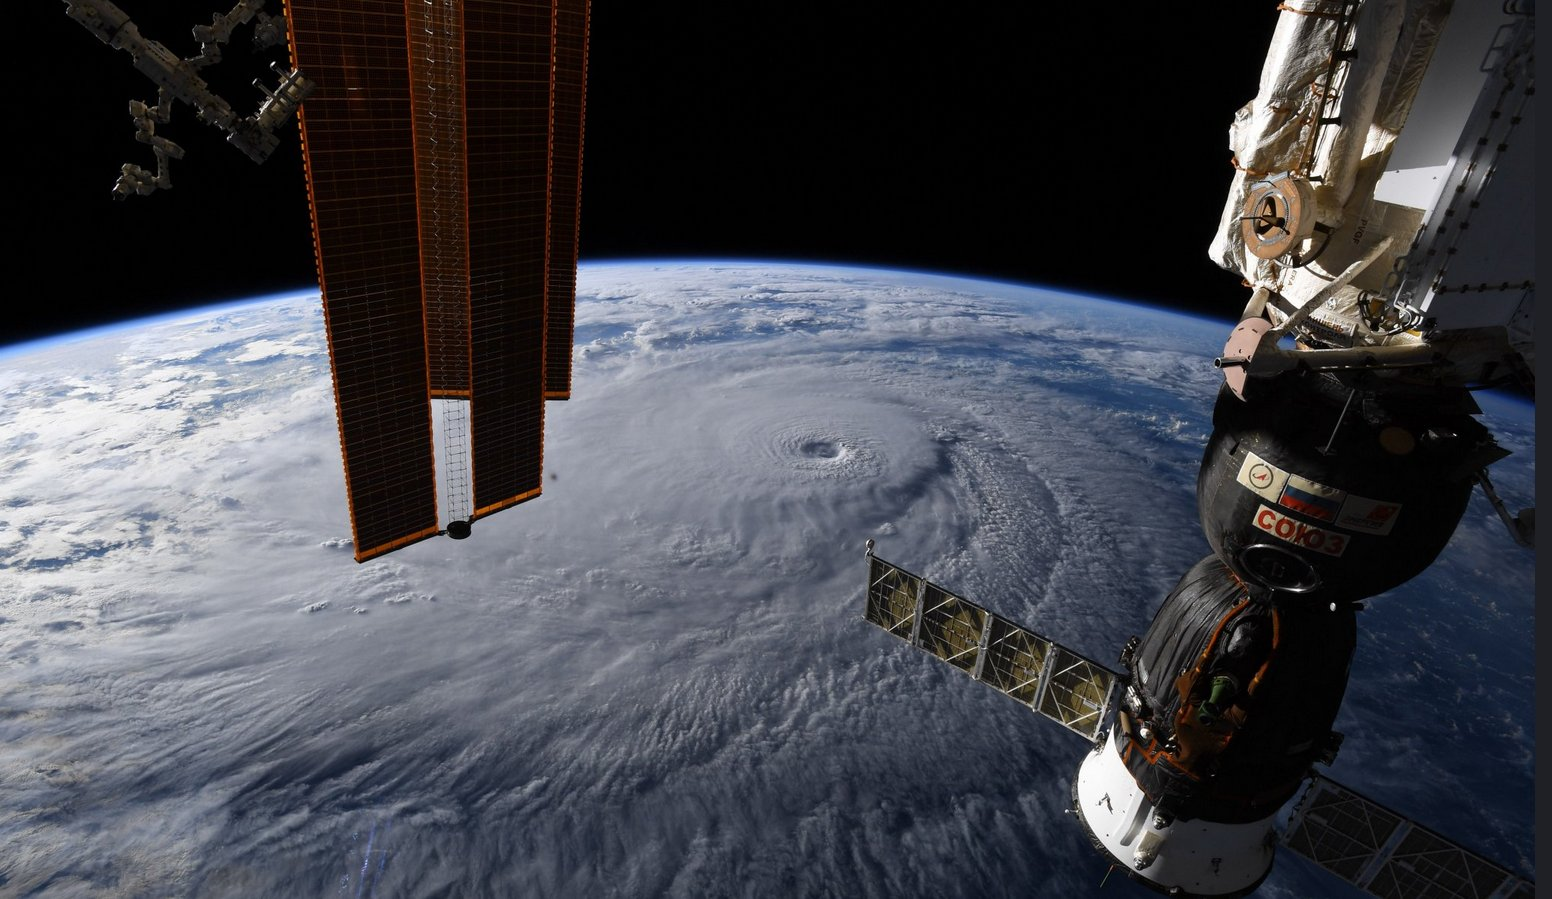 An incredible image of Hurricane Lane taken from the International Space Station the other day